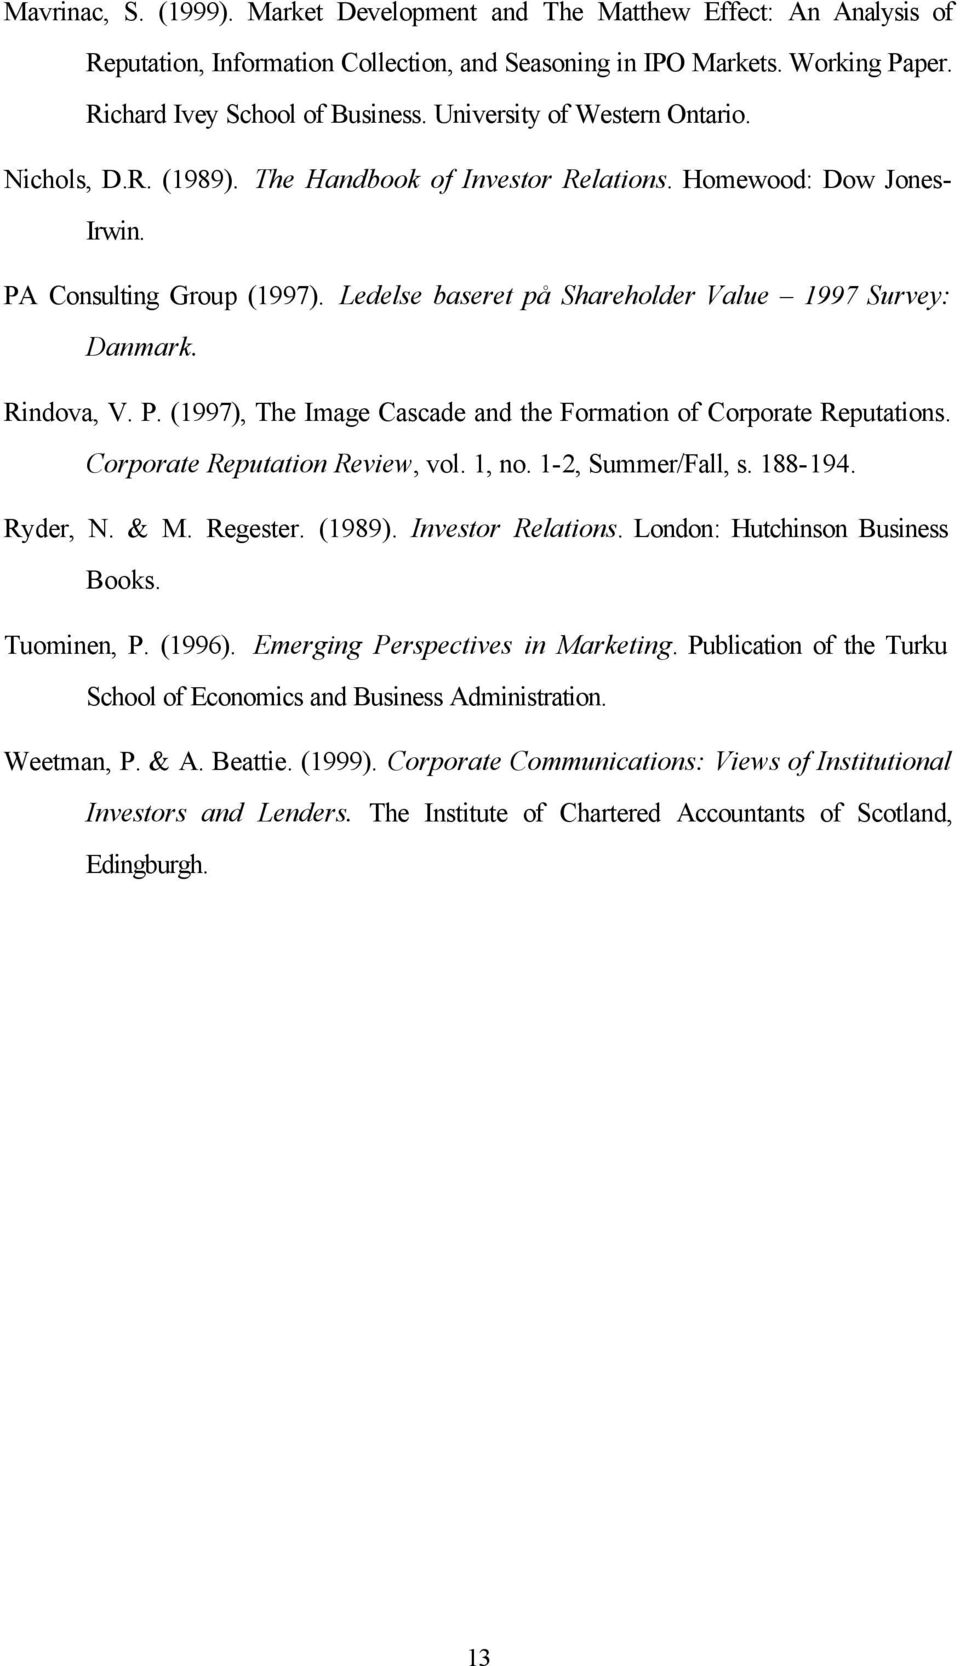 Ledelse baseret på Shareholder Value 1997 Survey: Danmark. Rindova, V. P. (1997), The Image Cascade and the Formation of Corporate Reputations. Corporate Reputation Review, vol. 1, no.